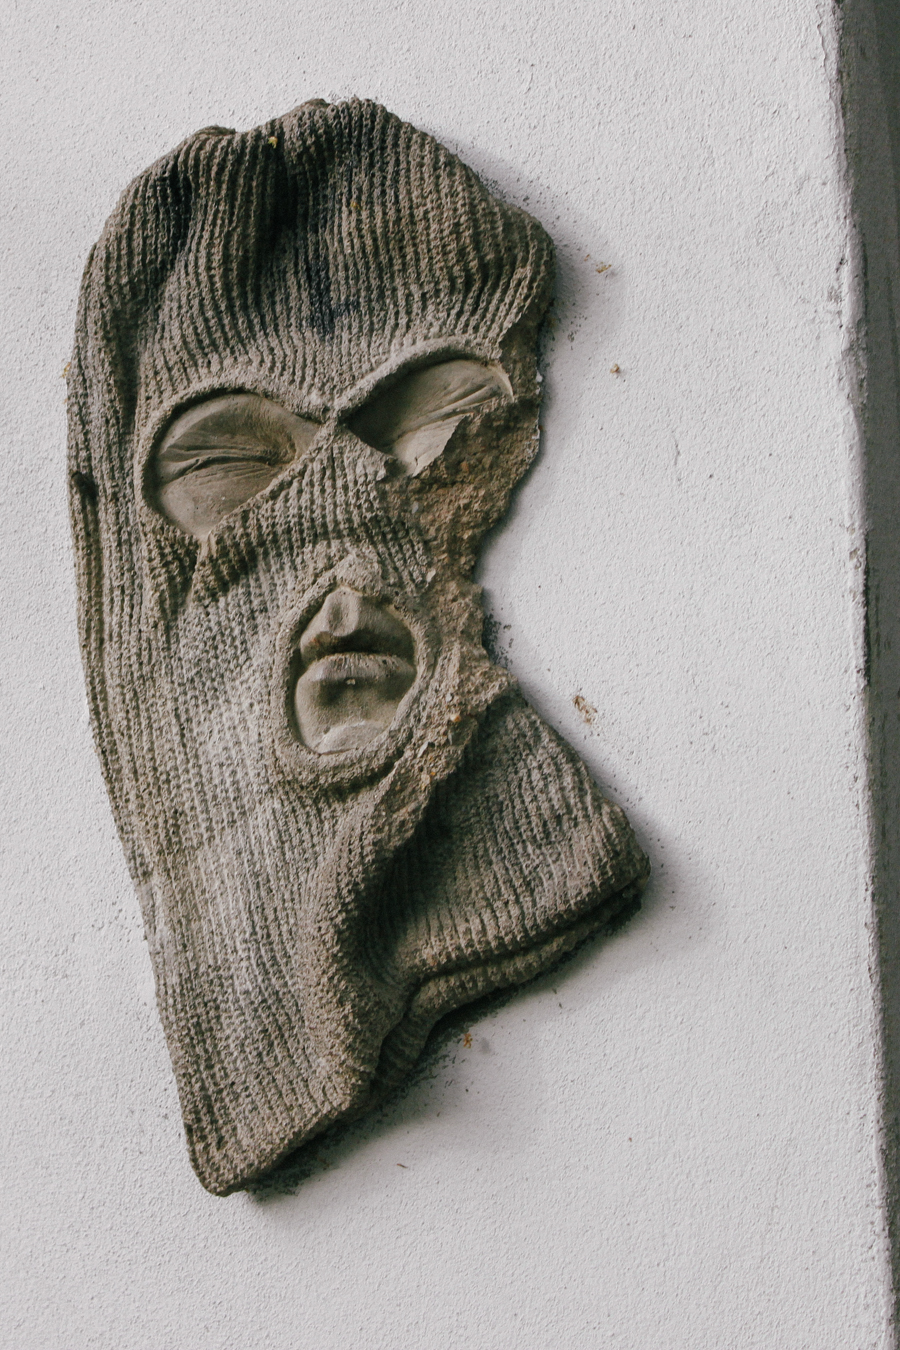 Quirky street art glove with a face in Sydney.